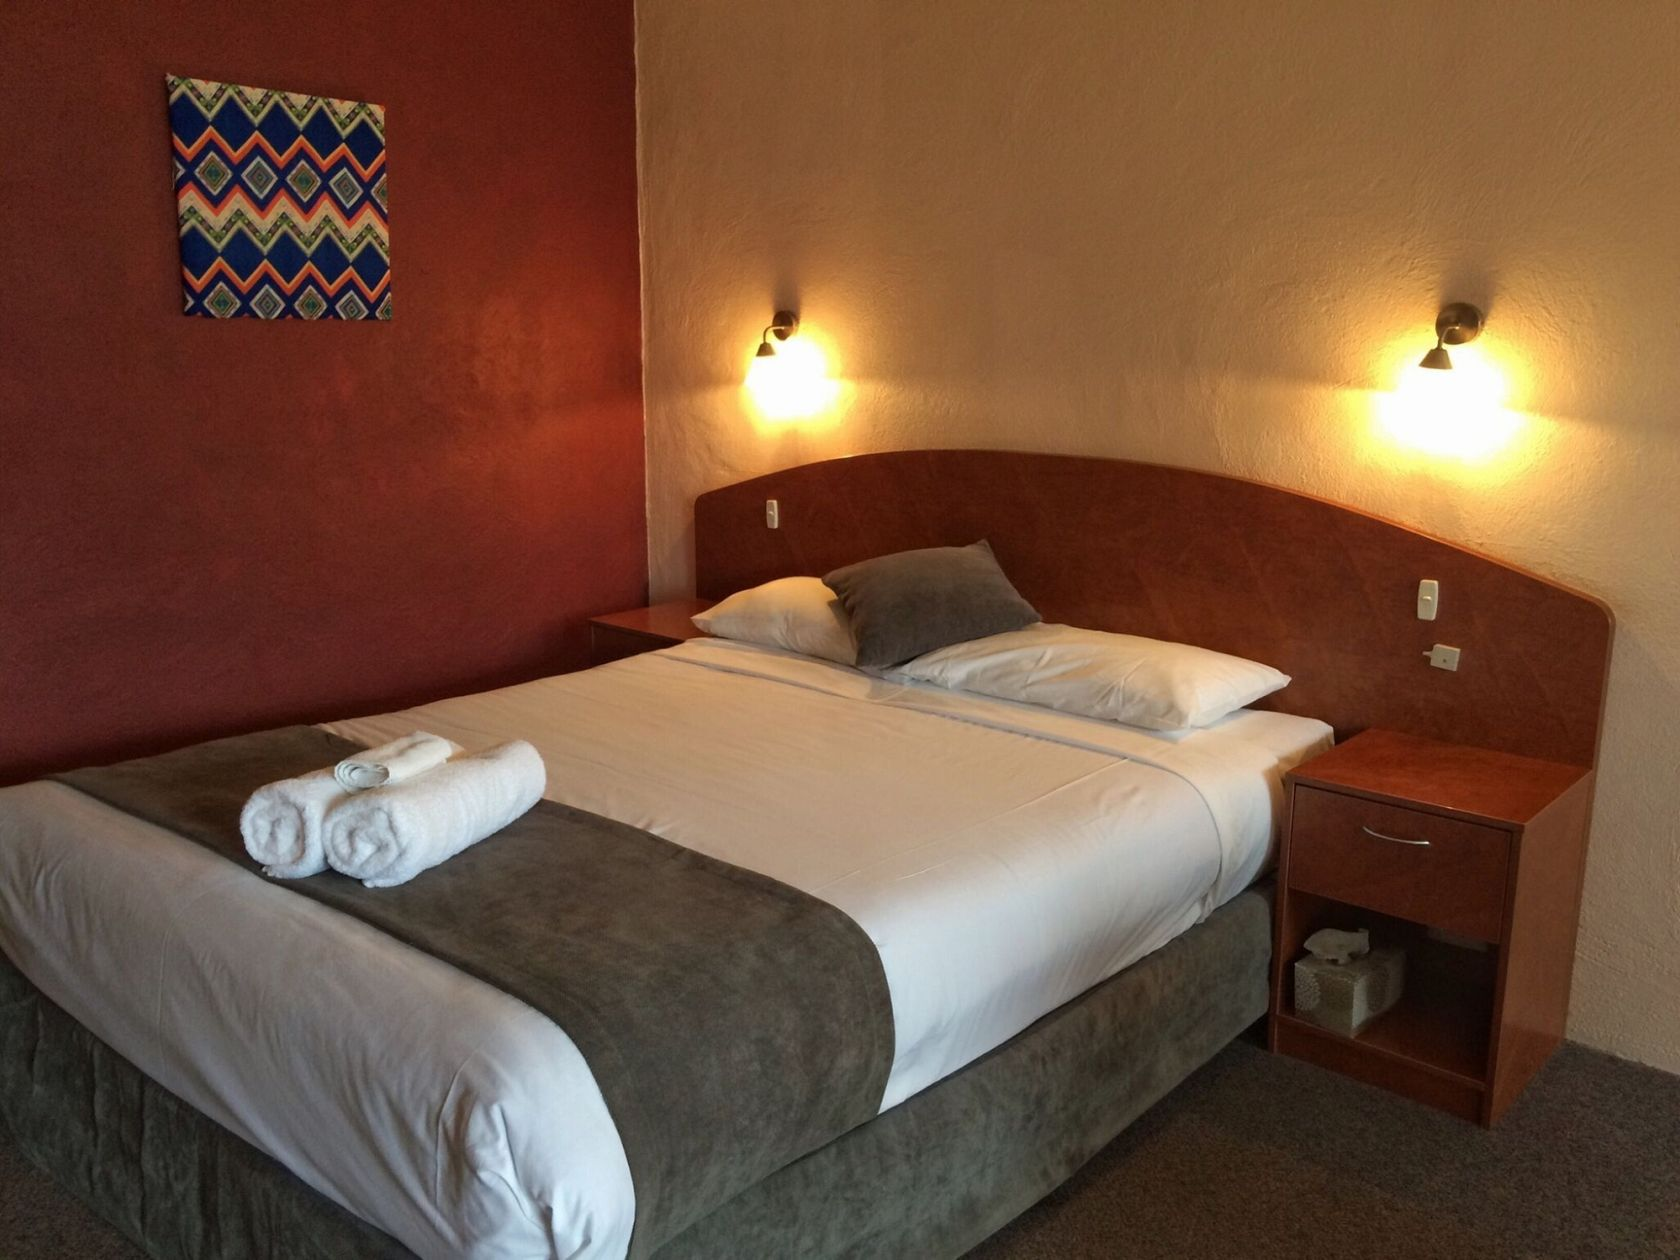 Beautifully Presented Motel in Picturesque Town